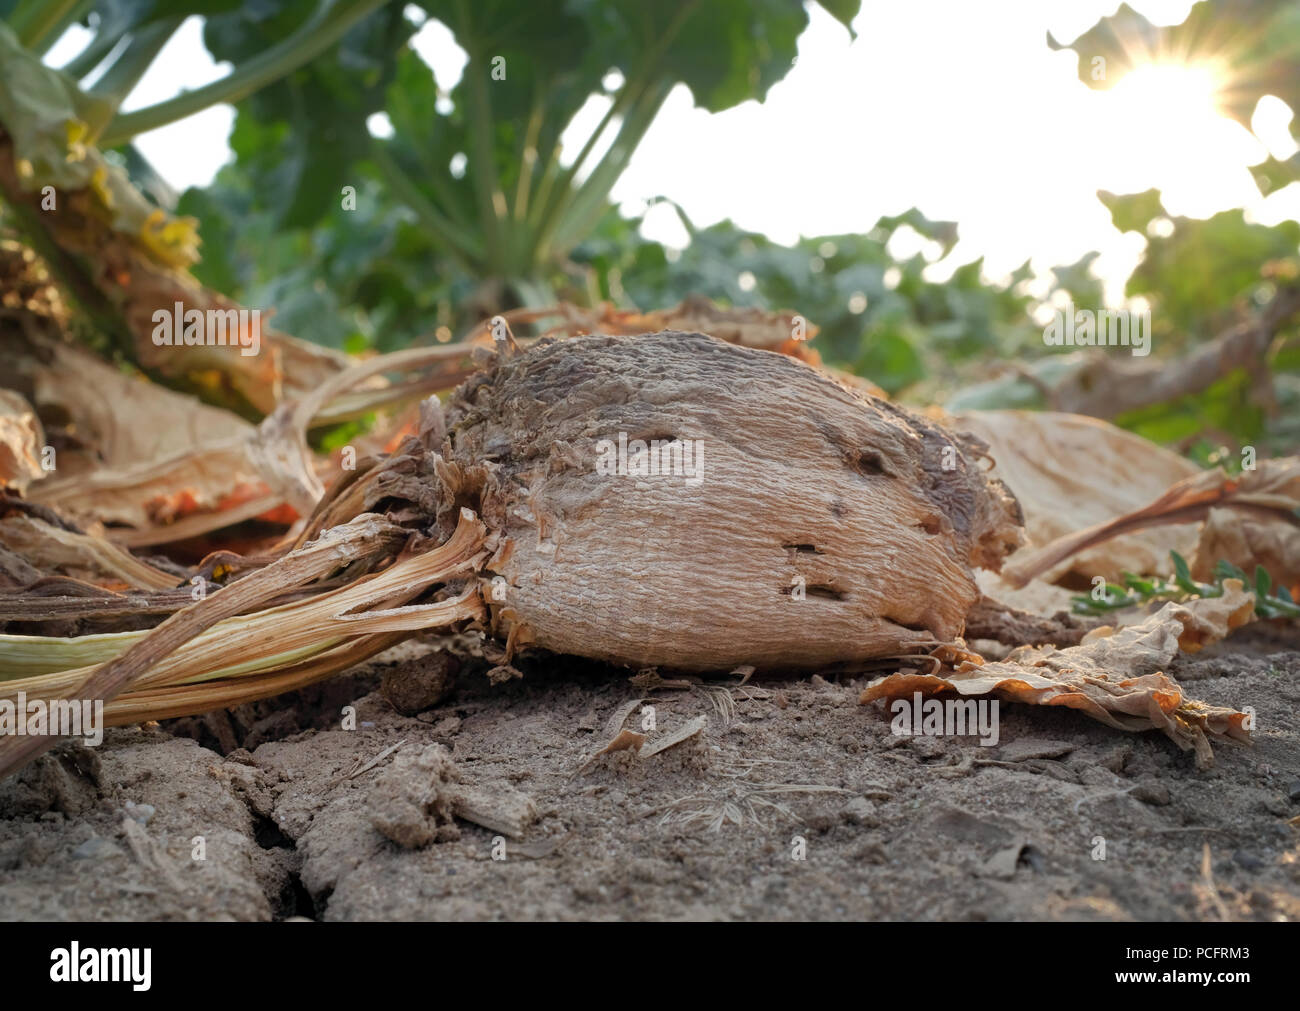 Duisburg, Germany. 02nd Aug, 2018. A sugar beet in a field. Farmers in many areas of Germany have had to contend with weeks of dry weather. Credit: Martin Gerten/dpa/Alamy Live News Stock Photo